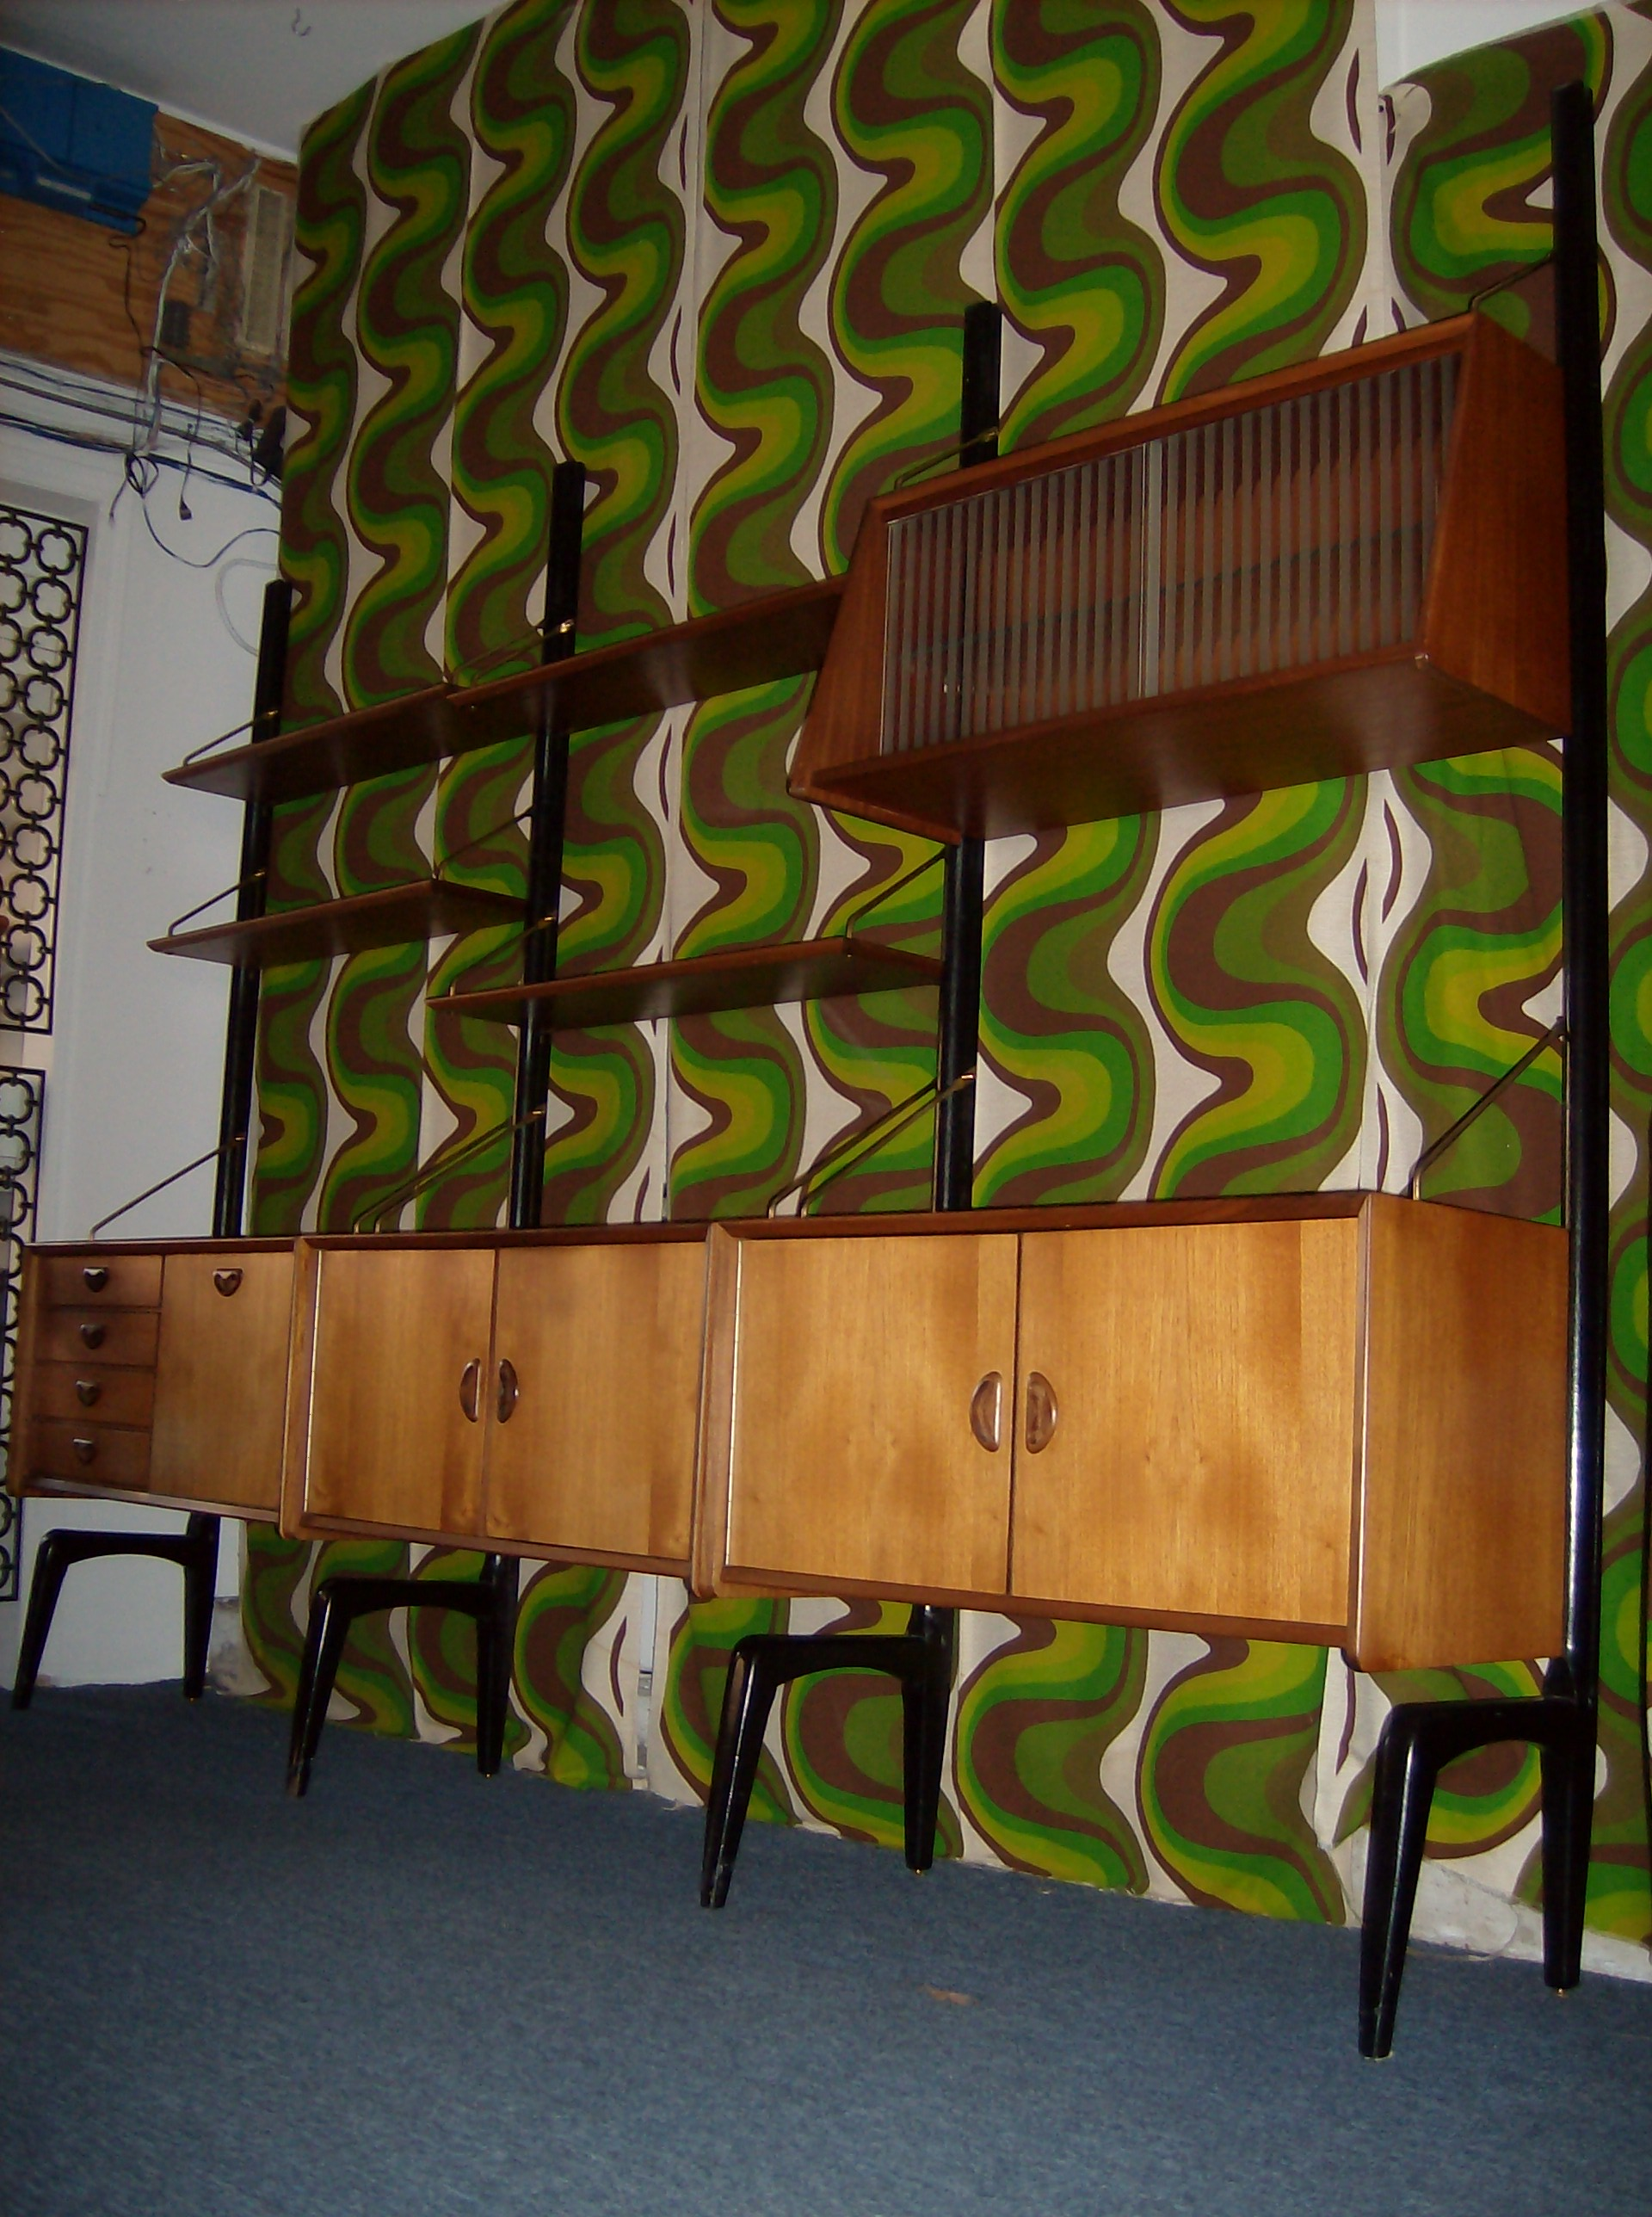 The Fabulous FindMid Century Modern Furniture Showroom in